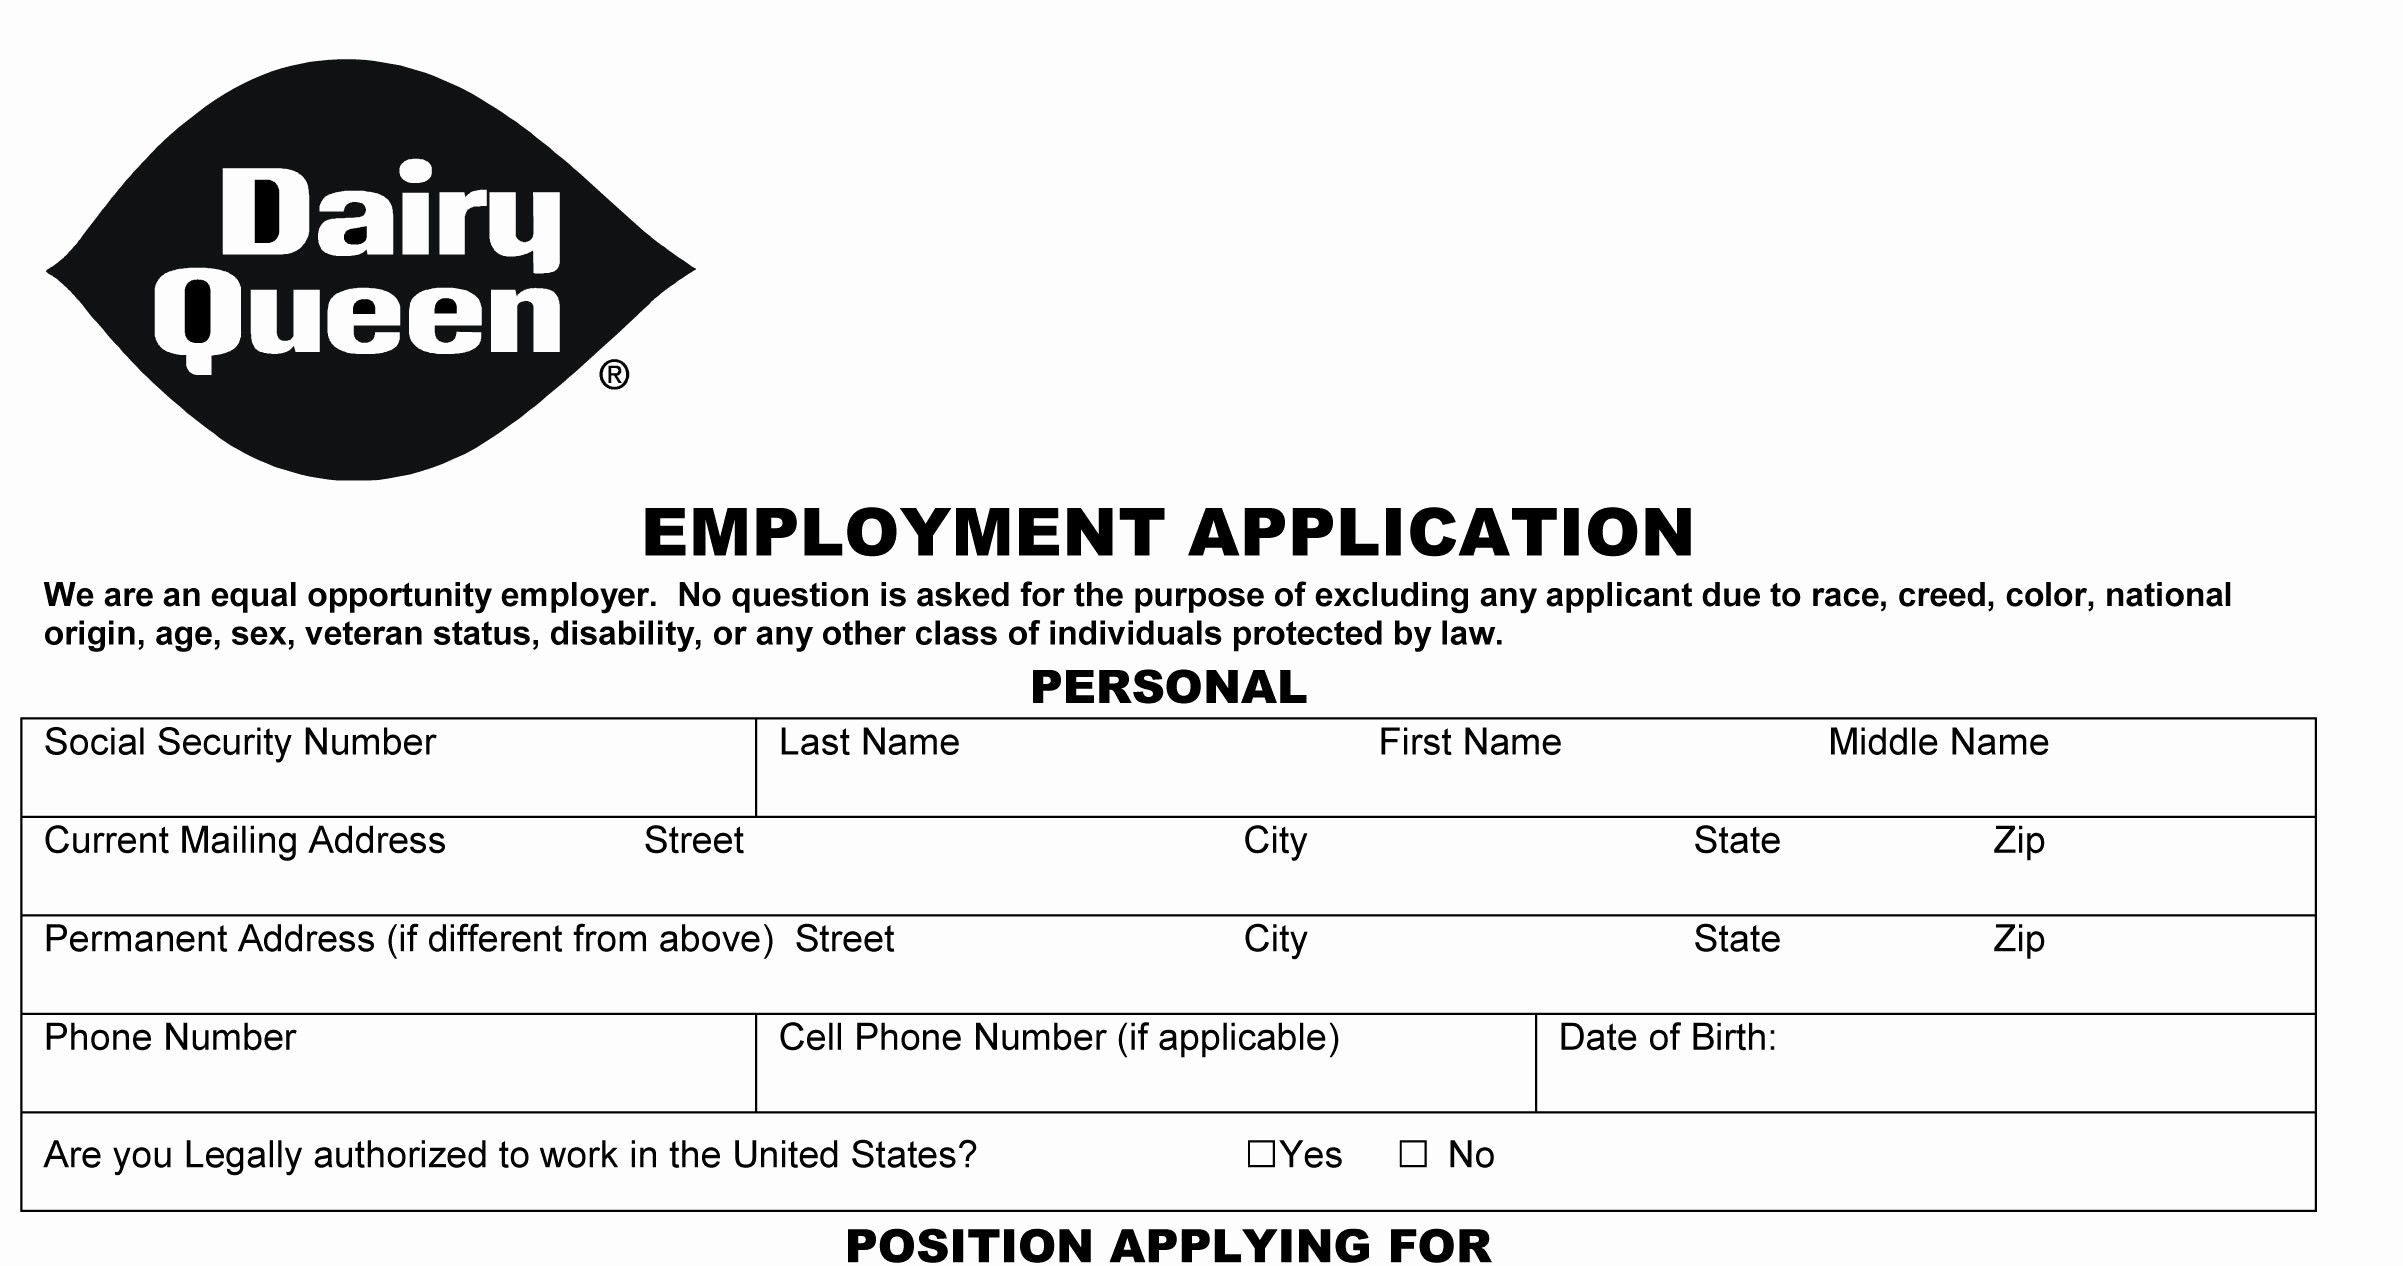 Application for Employment form Pdf Awesome Dairy Queen Job Application Printable Employment Pdf forms